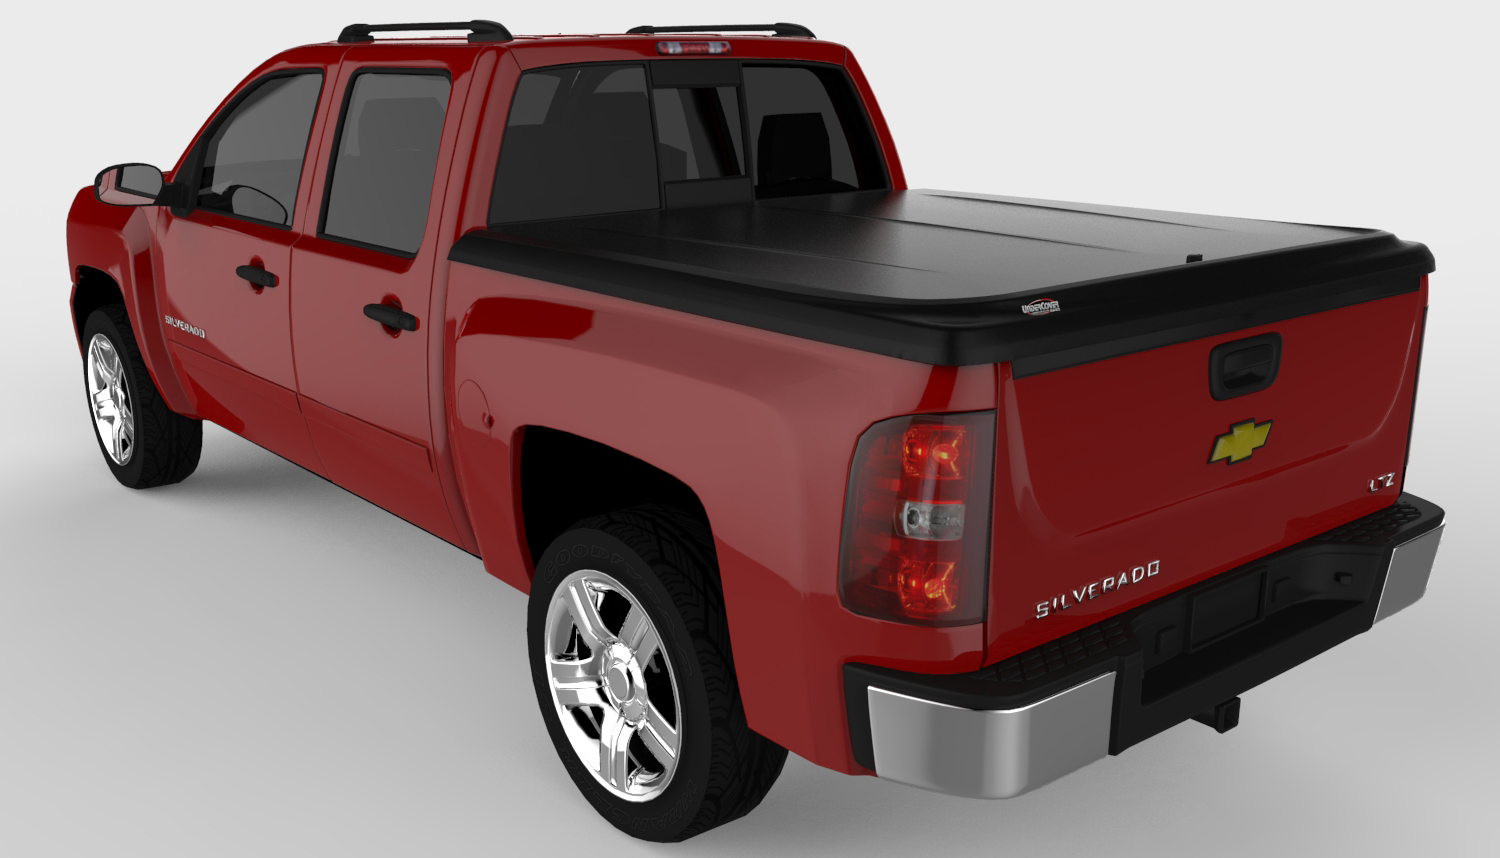 Undercover Tonneau Bed Covers in Daytona Beach, FL